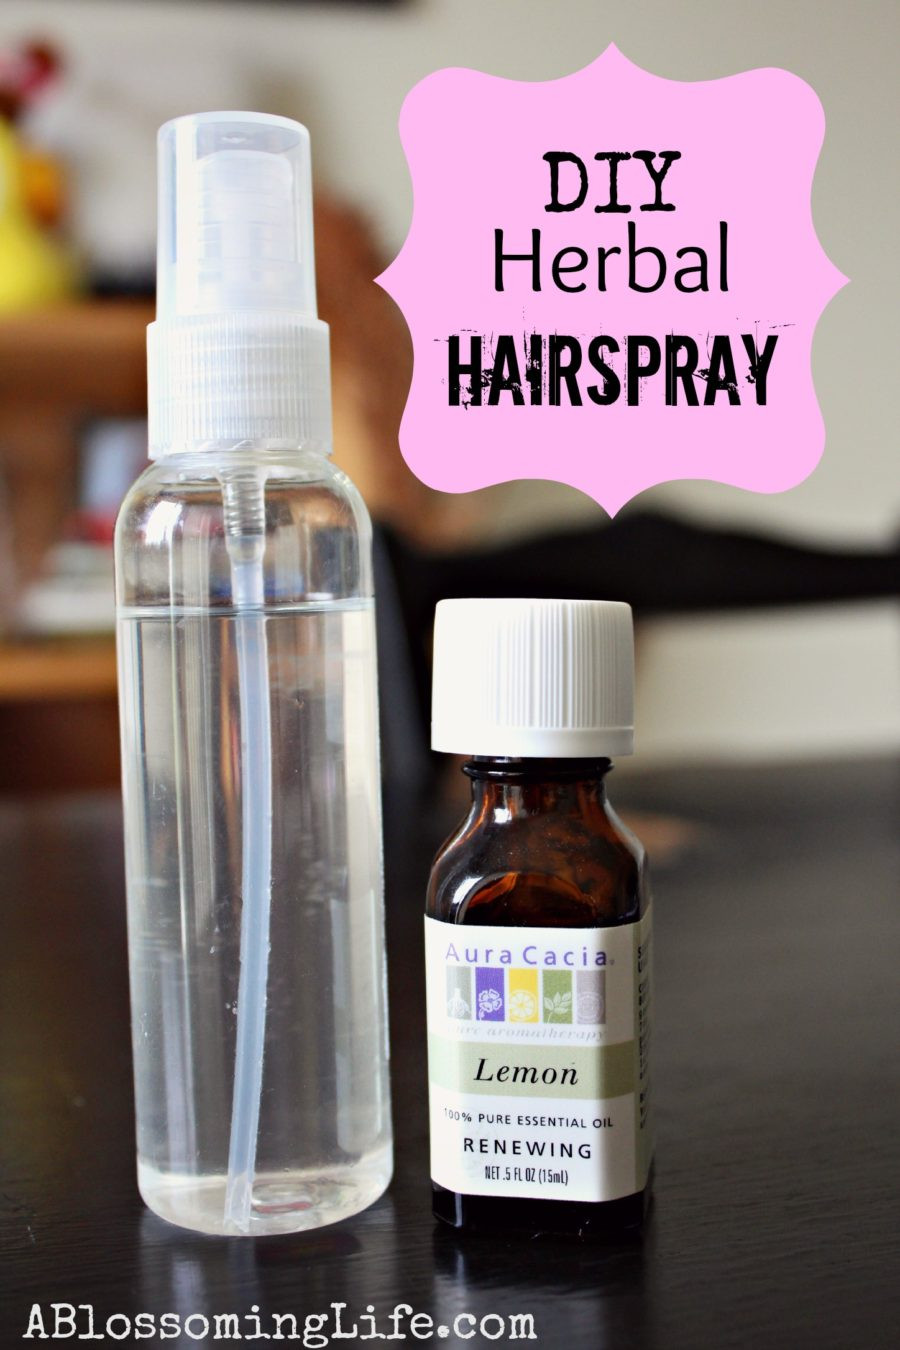 Best ideas about DIY Hair Growth Shampoo . Save or Pin DIY Natural Herbal Hairspray A Blossoming Life Now.